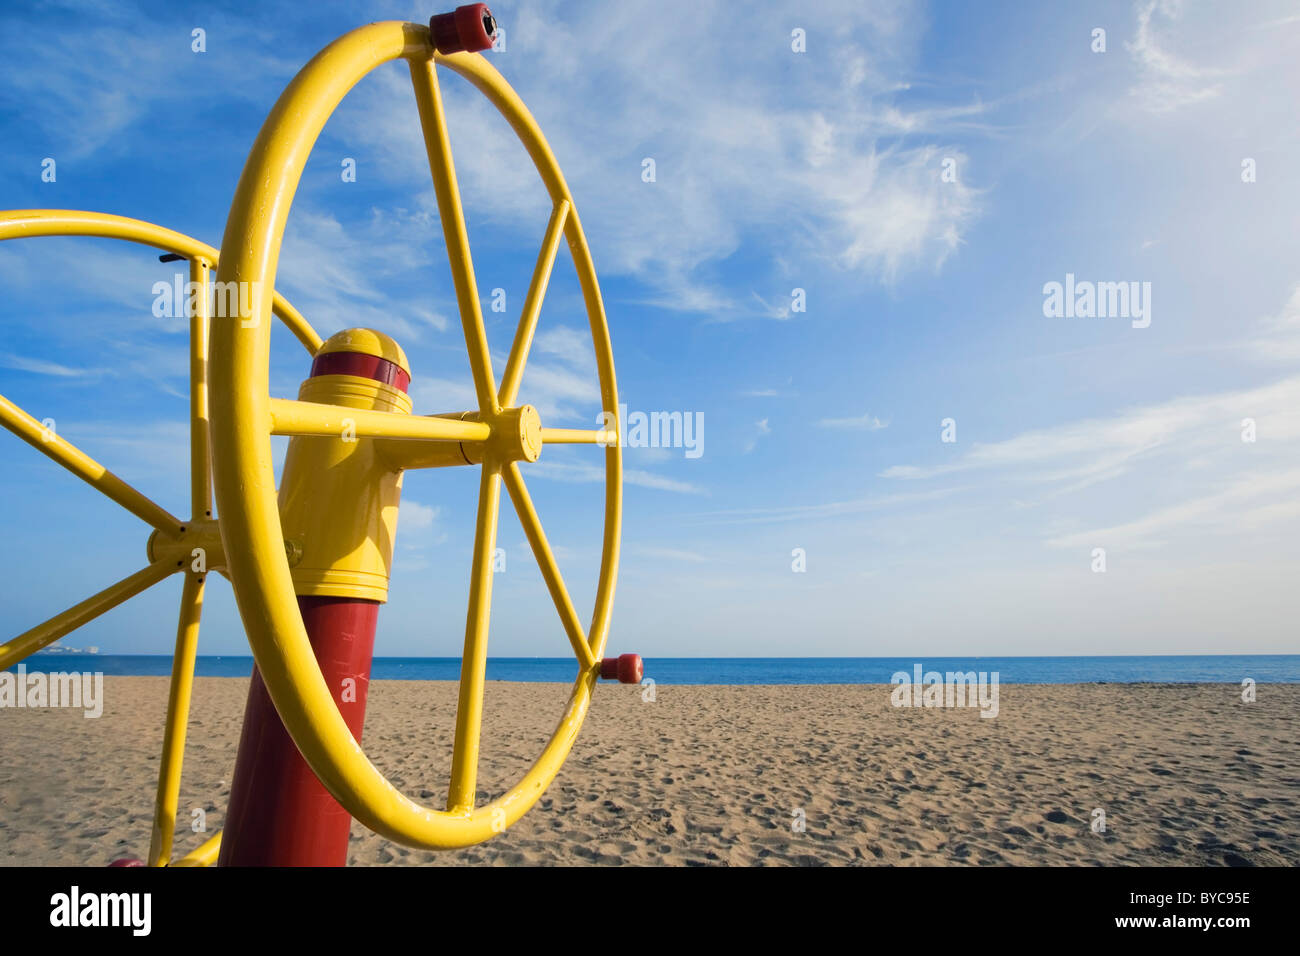 Arm excercise machine on empty beach in Los Boliches, Fuengirola, Costa del Sol, Spain. - Stock Image